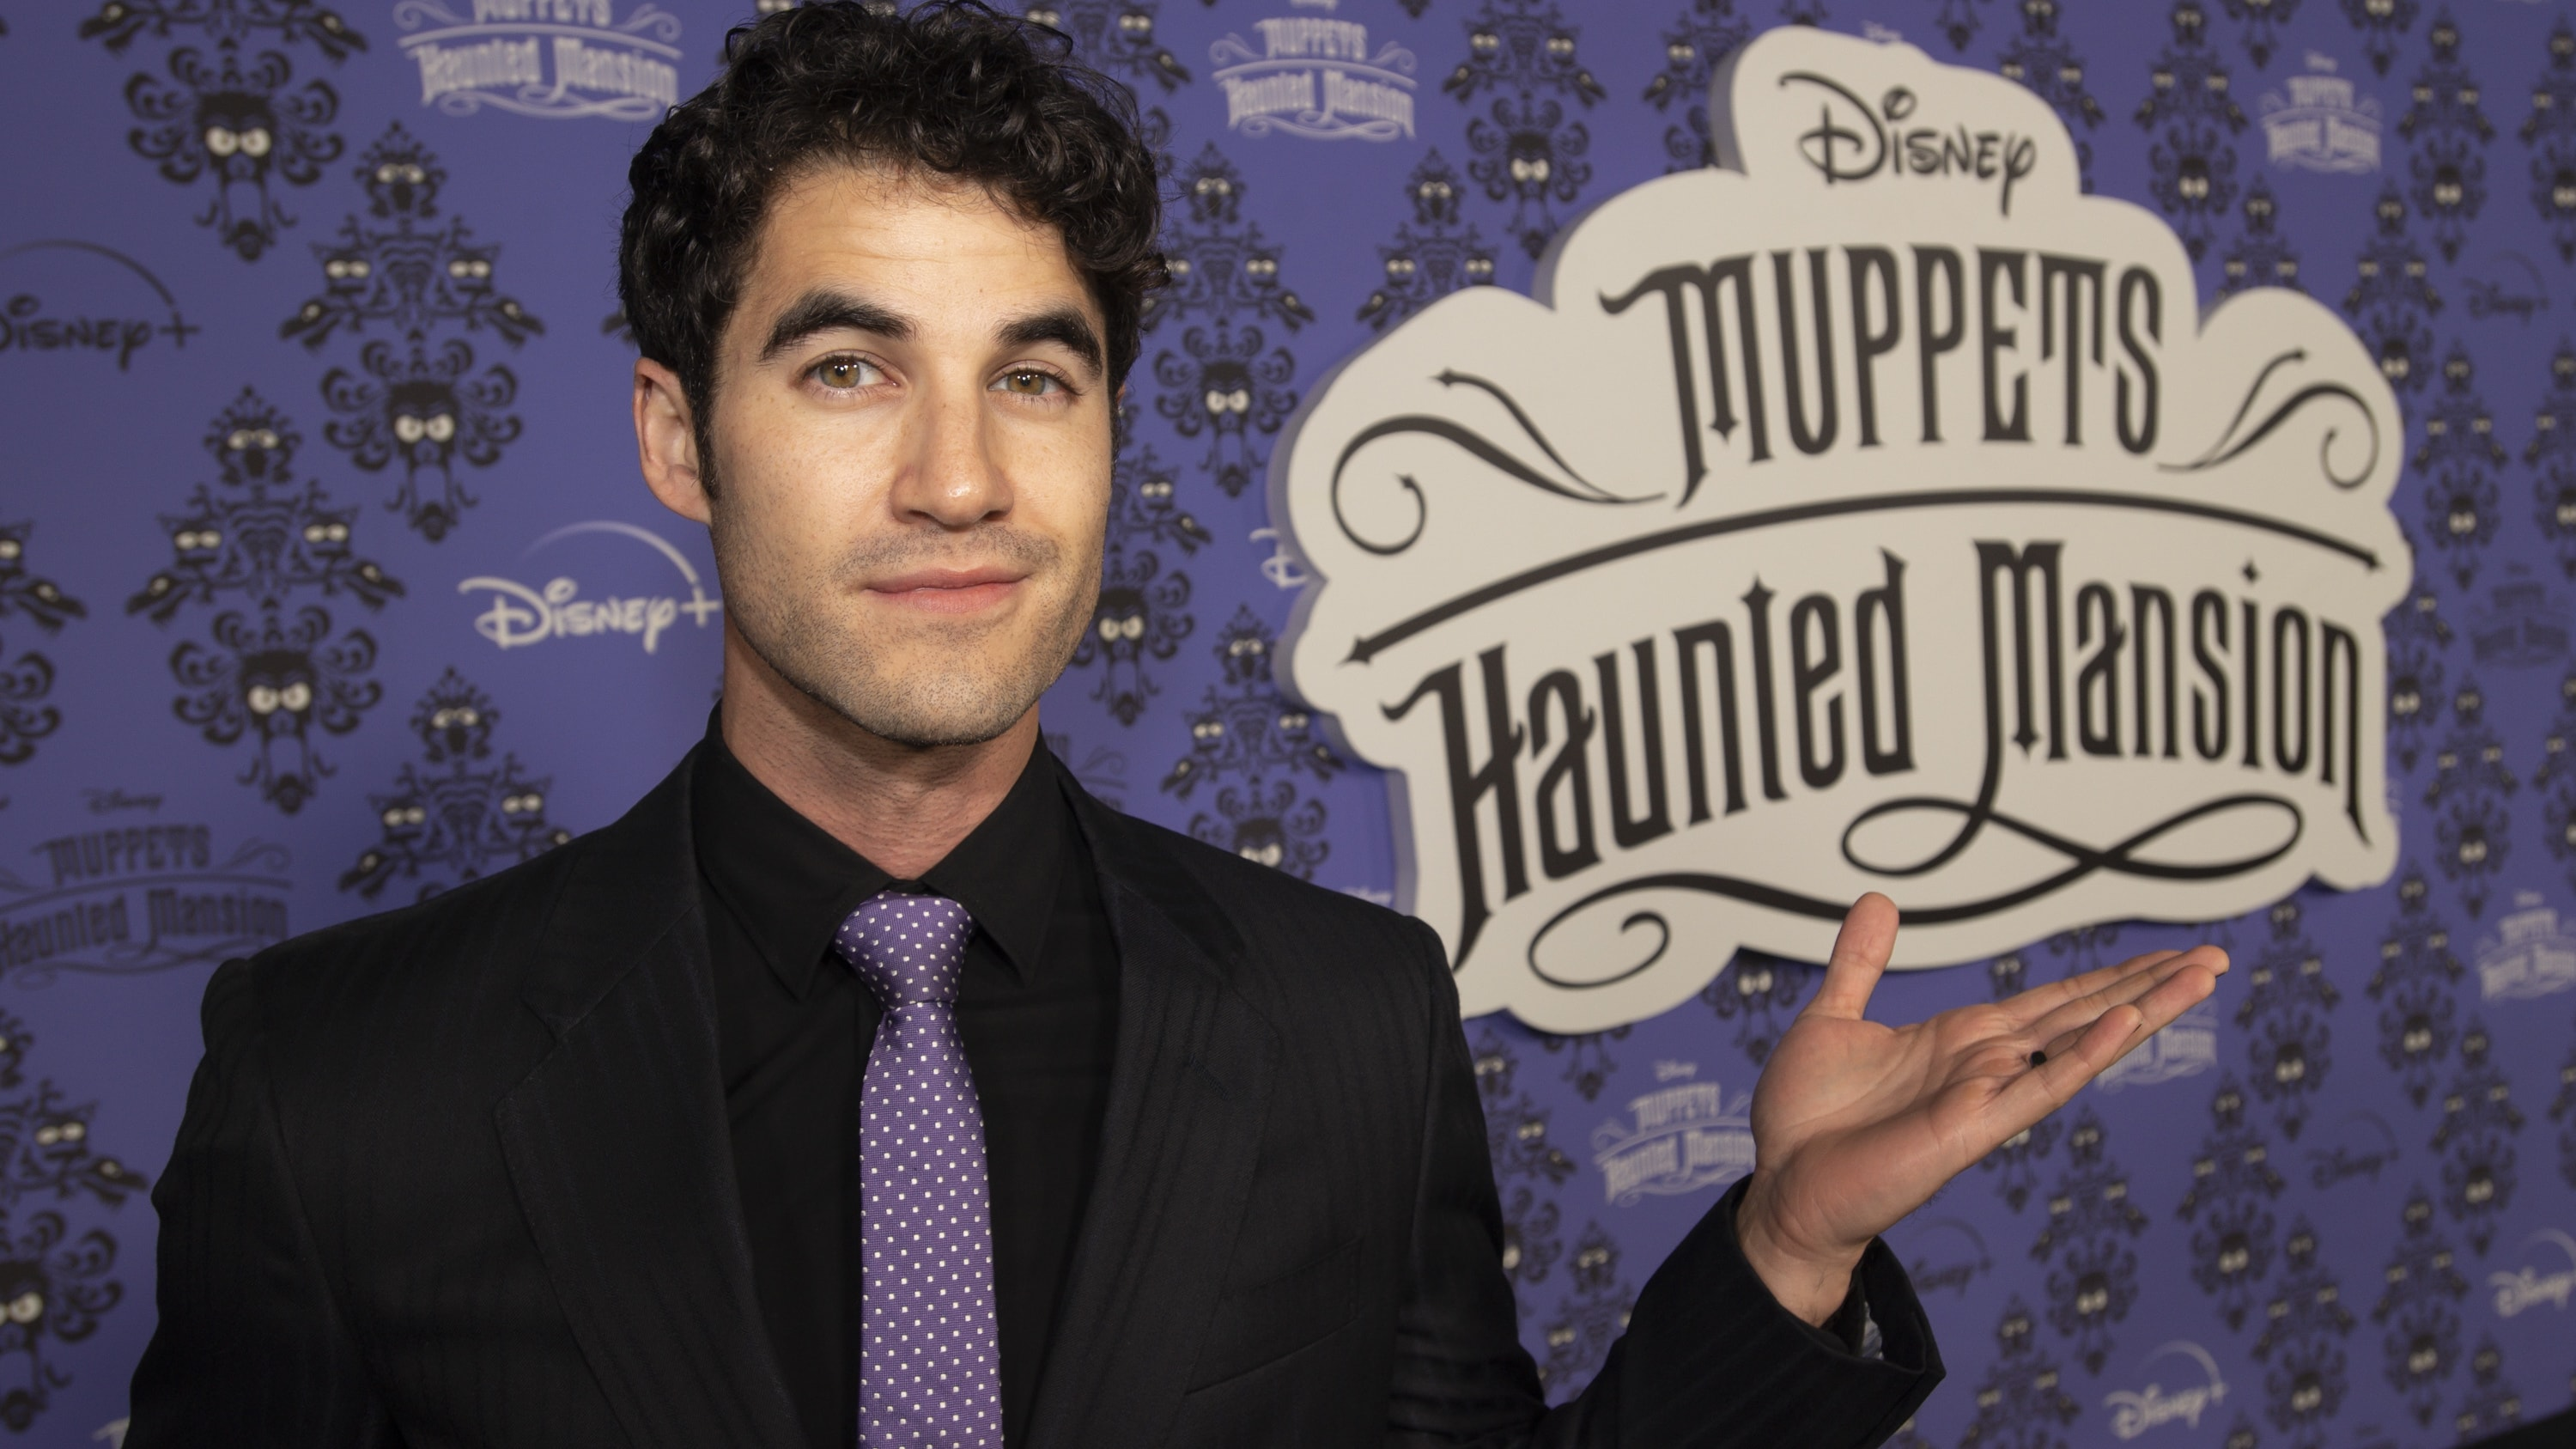 """MUPPETS HAUNTED MANSION - Stars of The Muppets first-ever Halloween special """"Muppets Haunted Mansion"""" attended the Drive-In Premiere Event at West Los Angeles College, Thursday, October 7. """"Muppets Haunted Mansion"""" is available to stream Friday, October 8 on Disney+. (Disney/Richard Harbaugh) DARREN CRISS"""